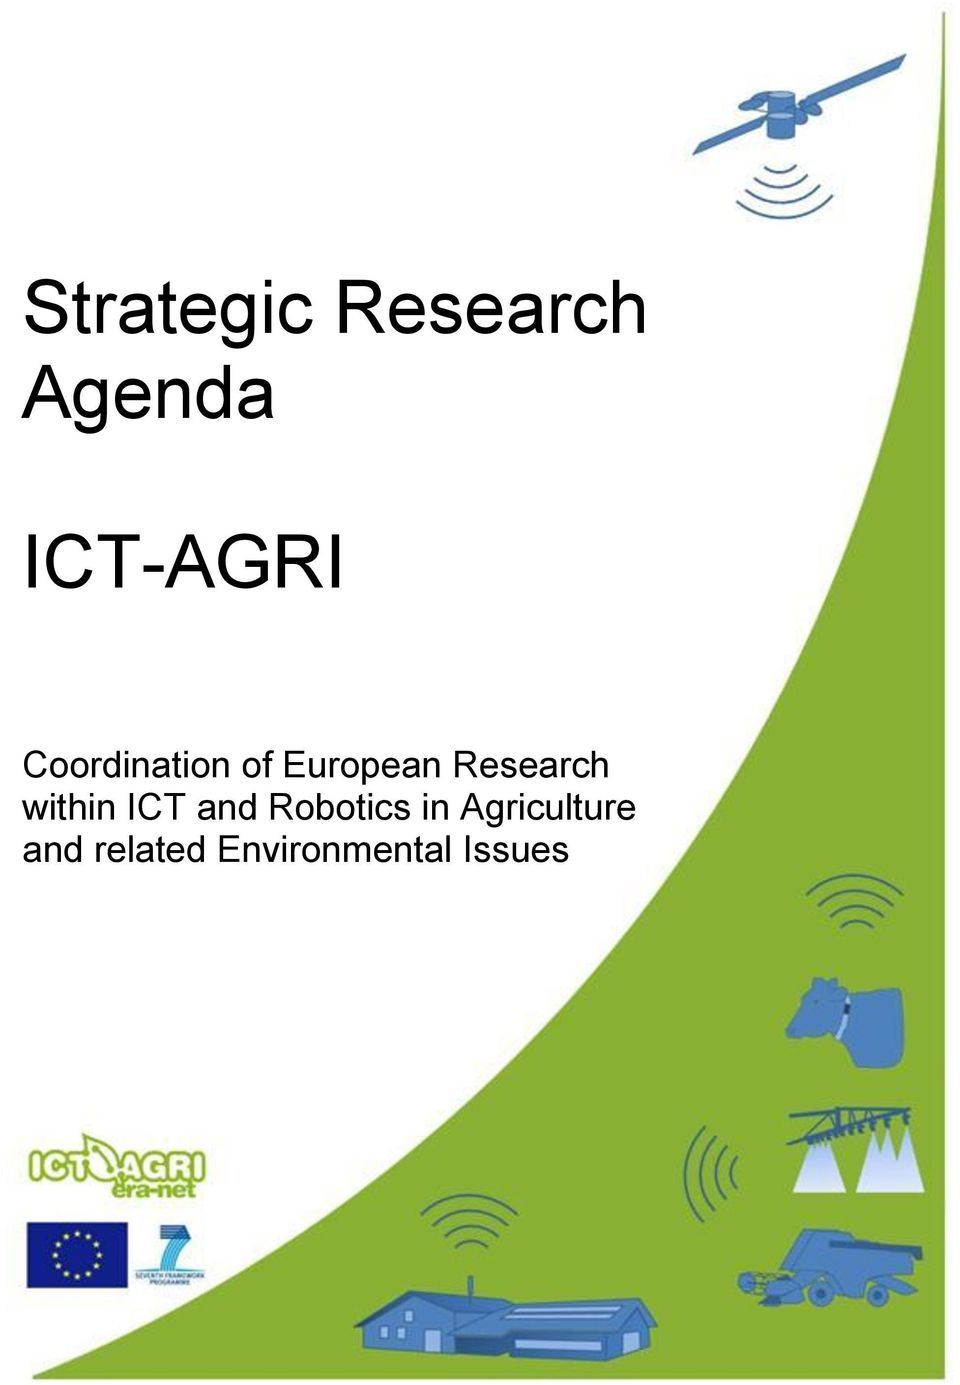 within ICT and Robotics in